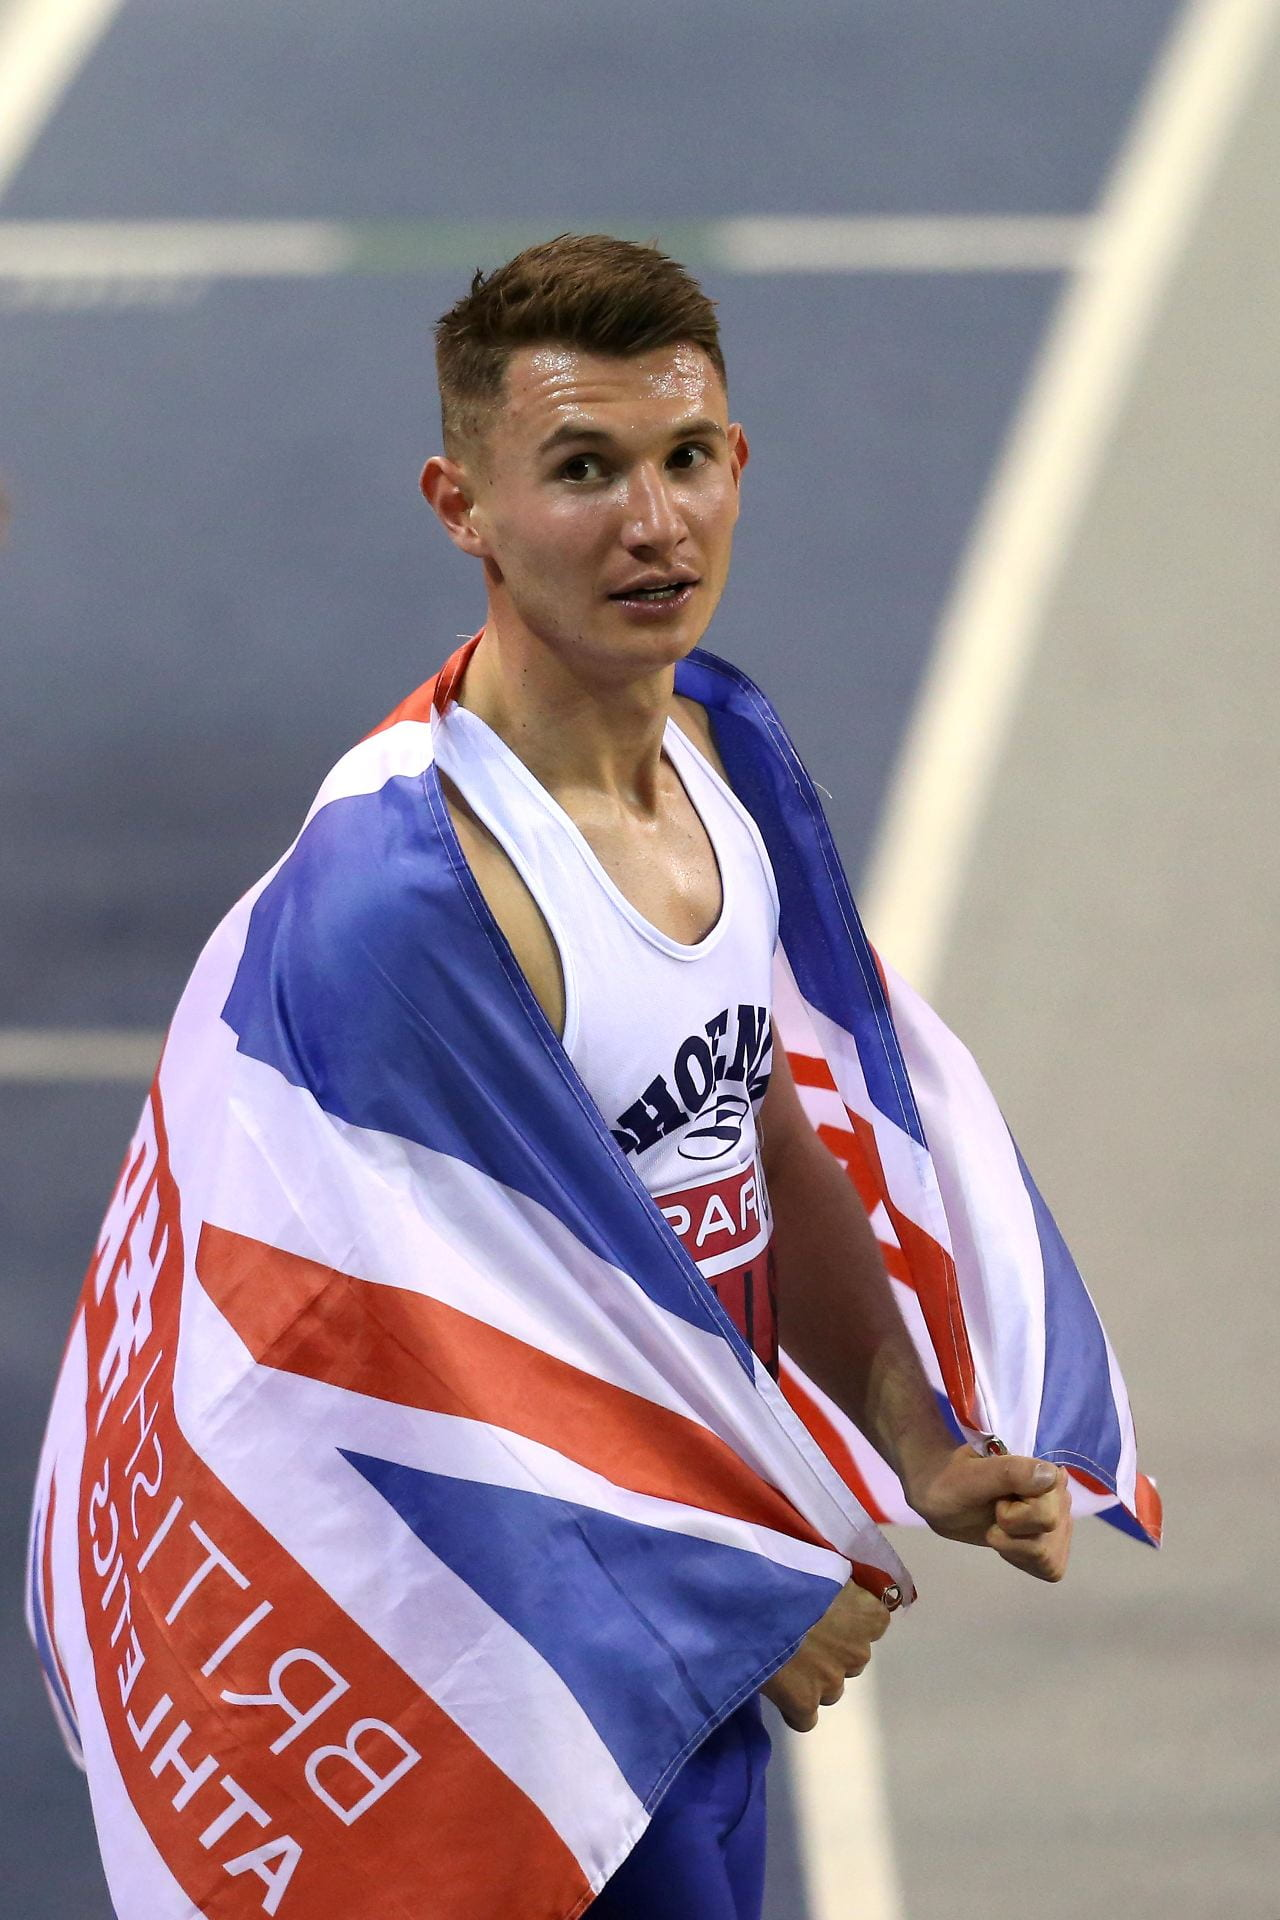 George wrapped in the Union Jack at the British championship